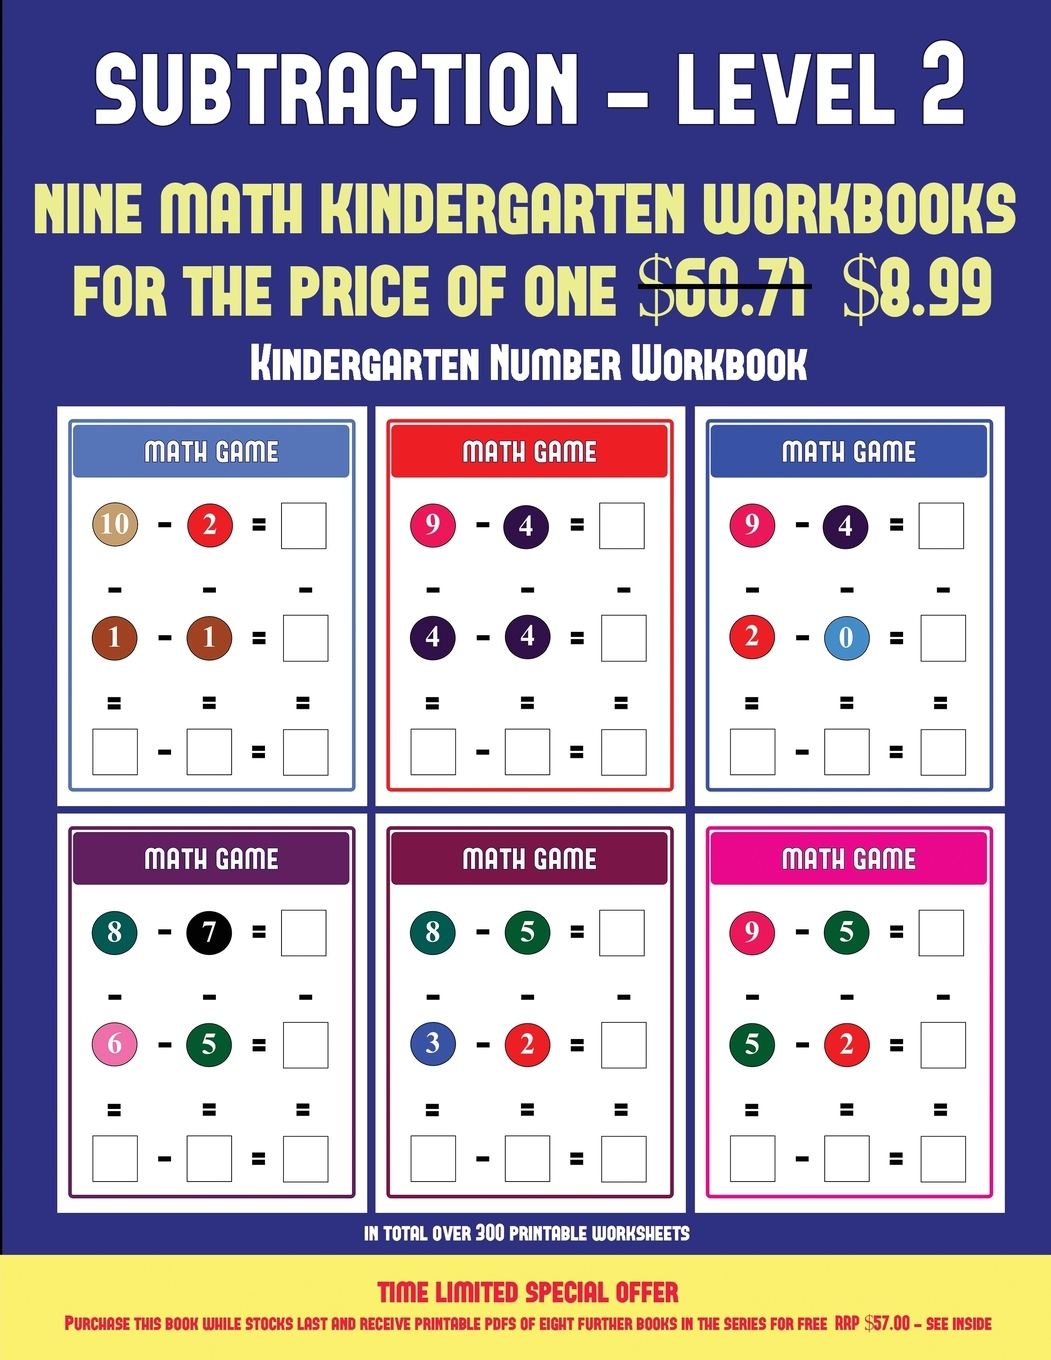 Kindergarten Number Workbook Kindergarten Subtraction